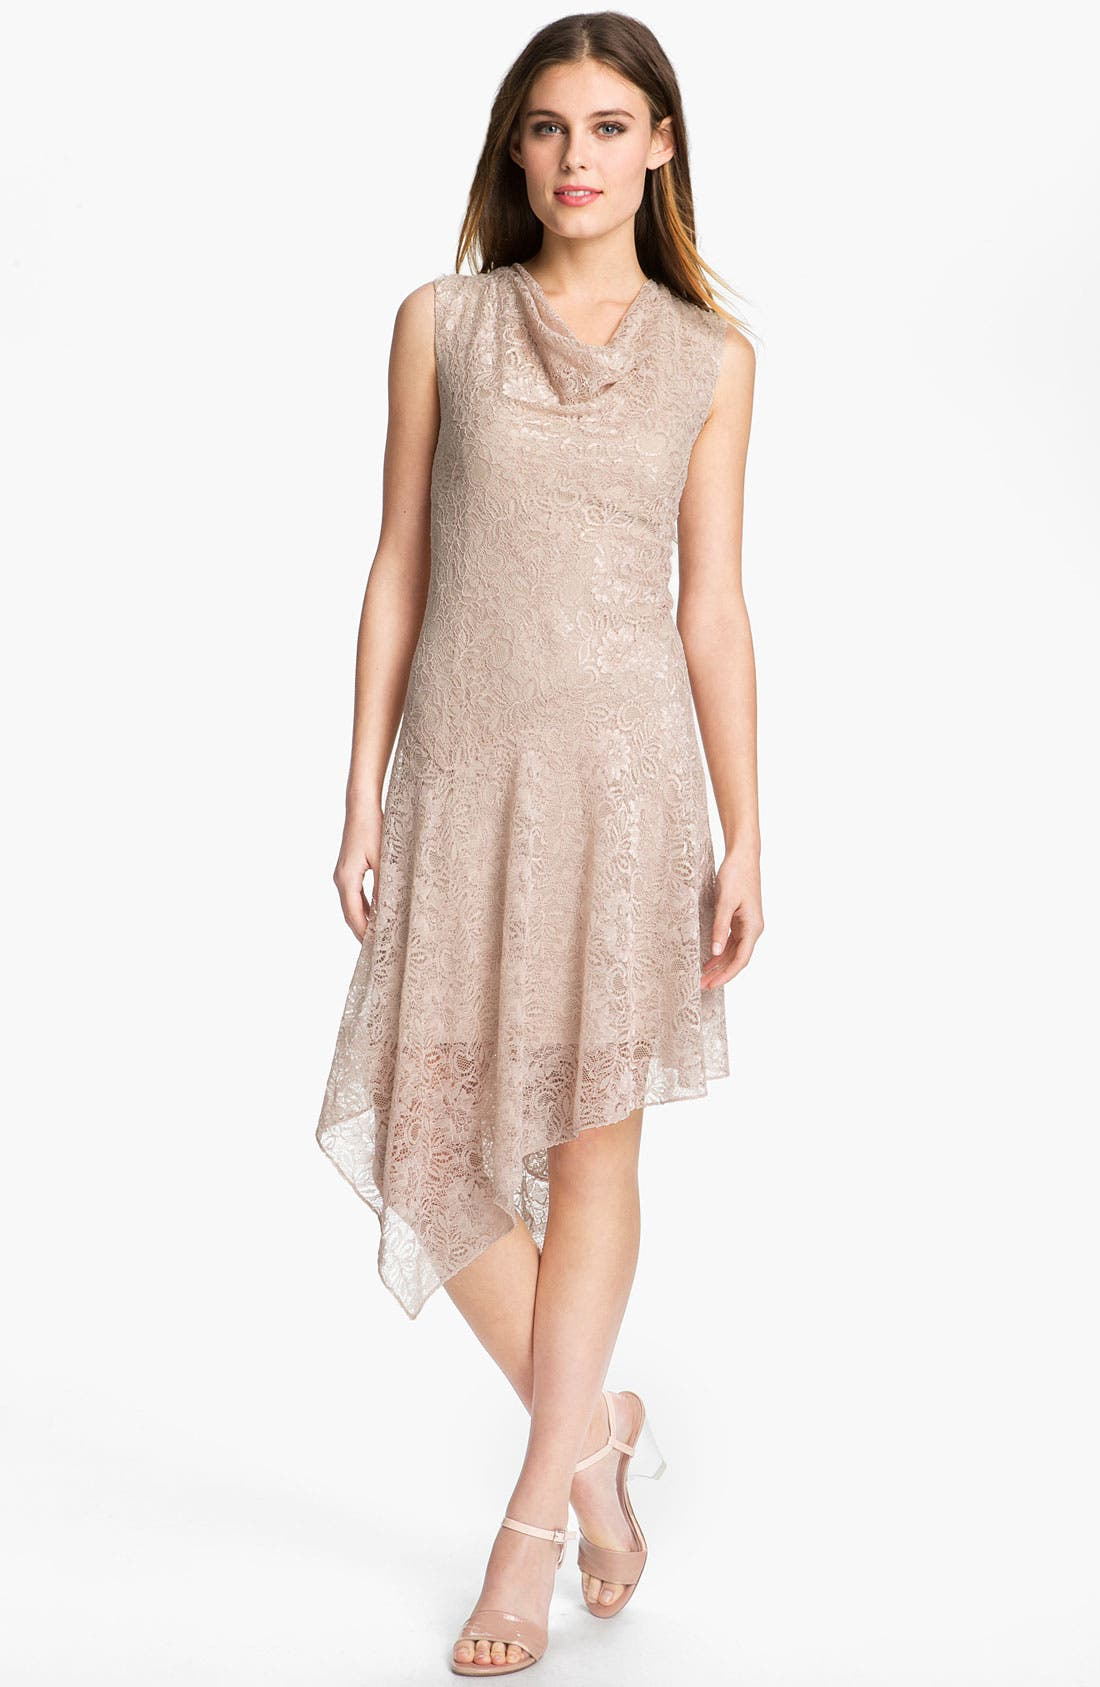 Main Image - Adrianna Papell Cowl Neck Lace Dress